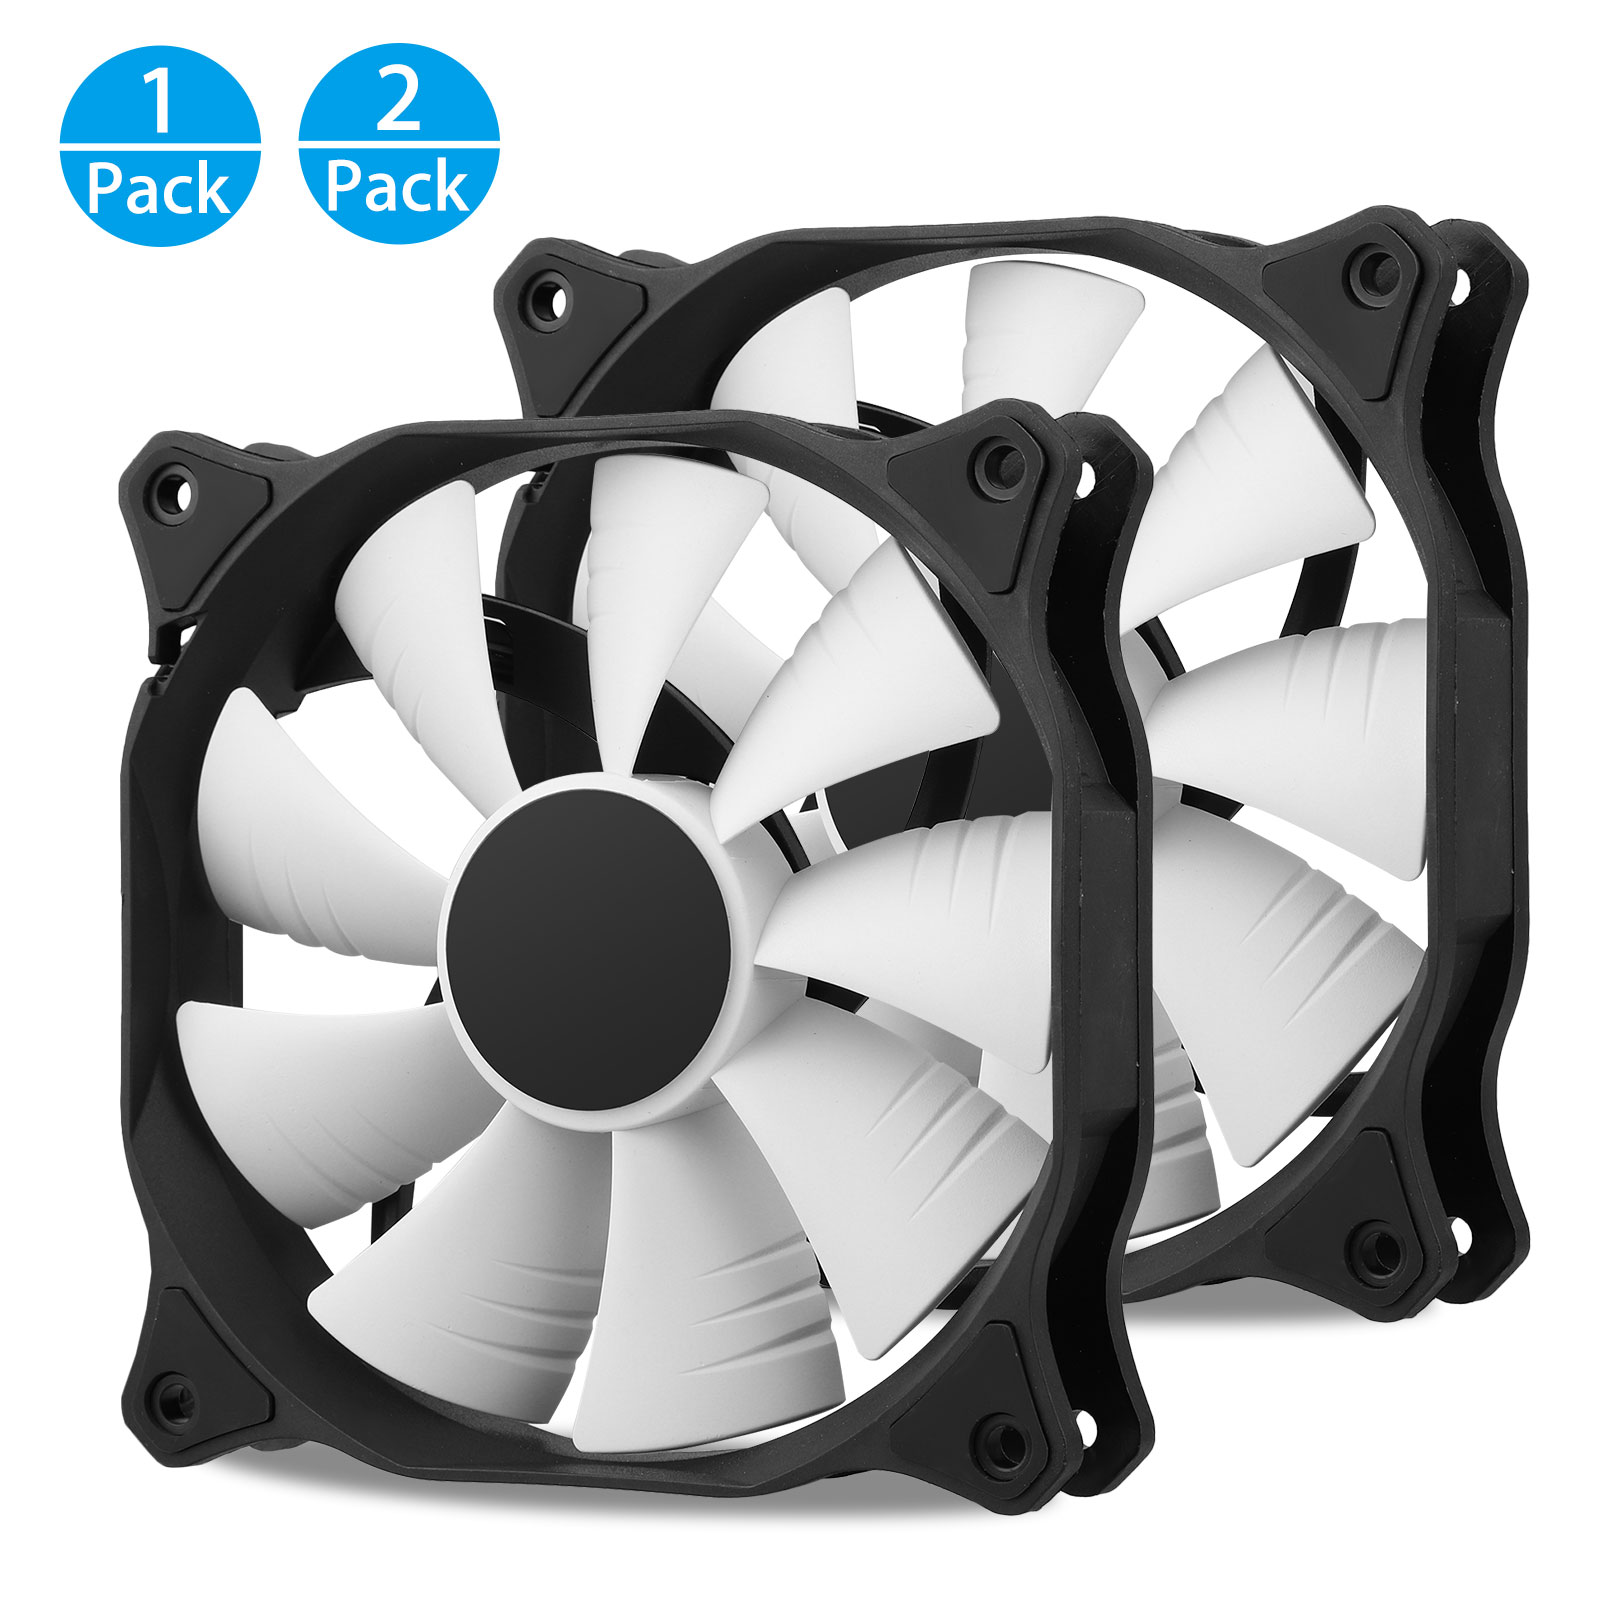 2pack 120mm 4 Pins 12V Cooling Case Fan for PC Desktop Computer Quiet CPU Cooler